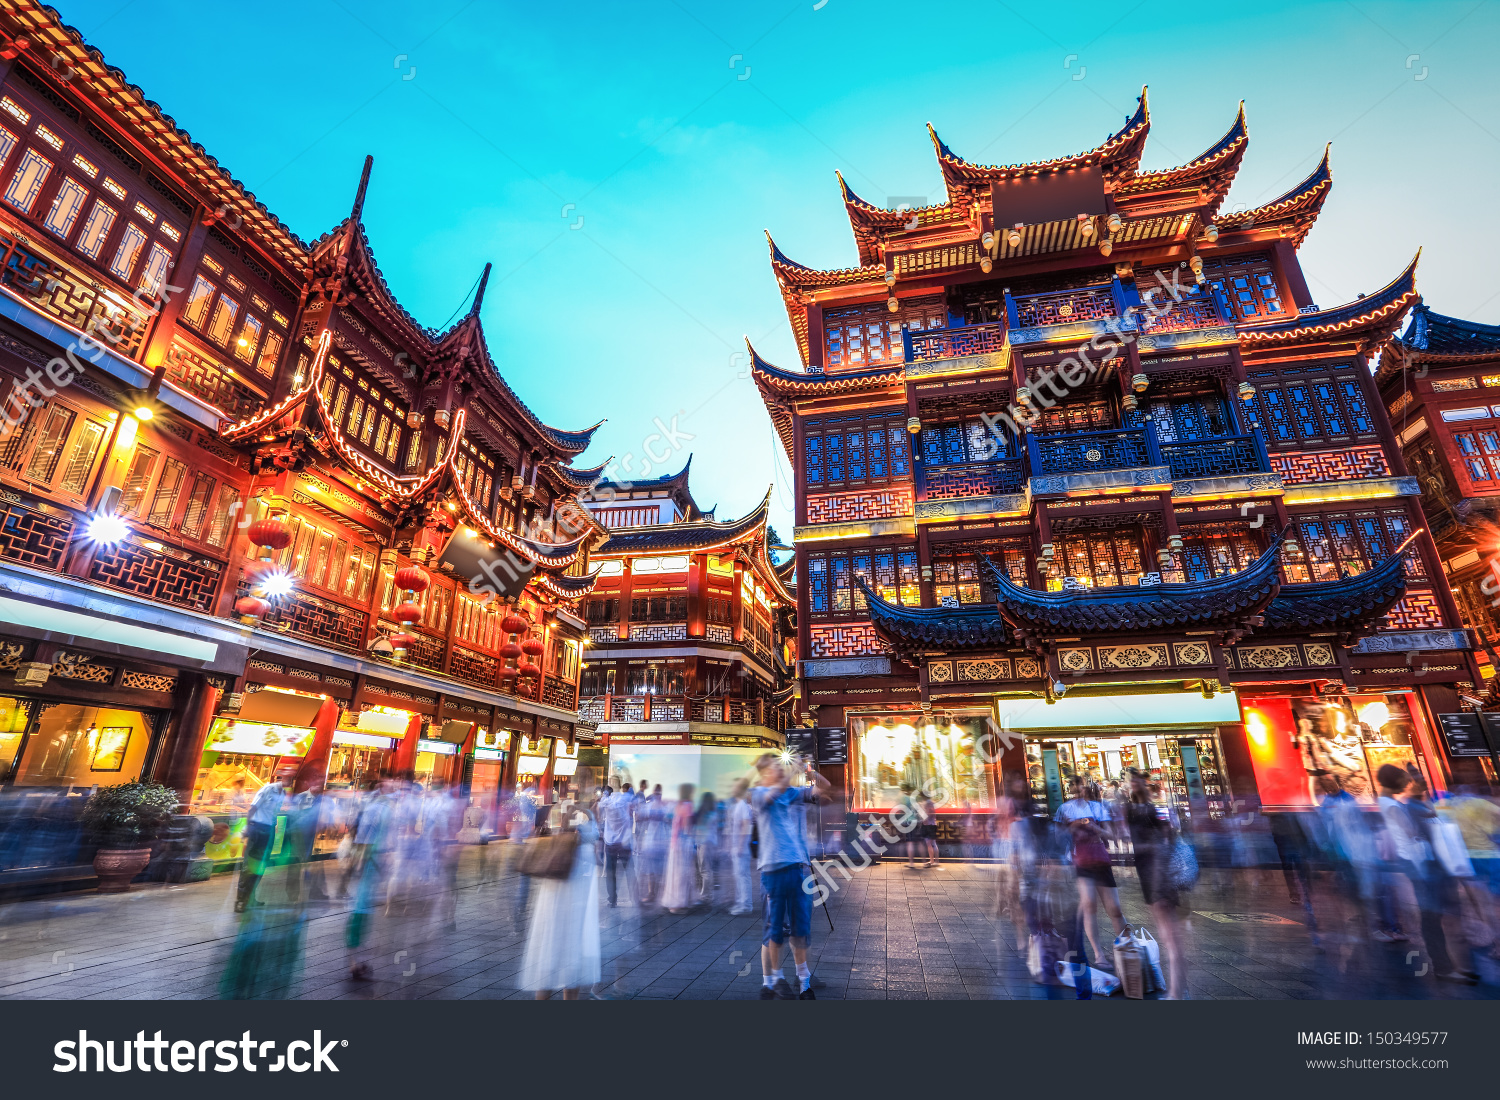 Beautiful Yuyuan Garden Nighttraditional Shopping Area Stock Photo.